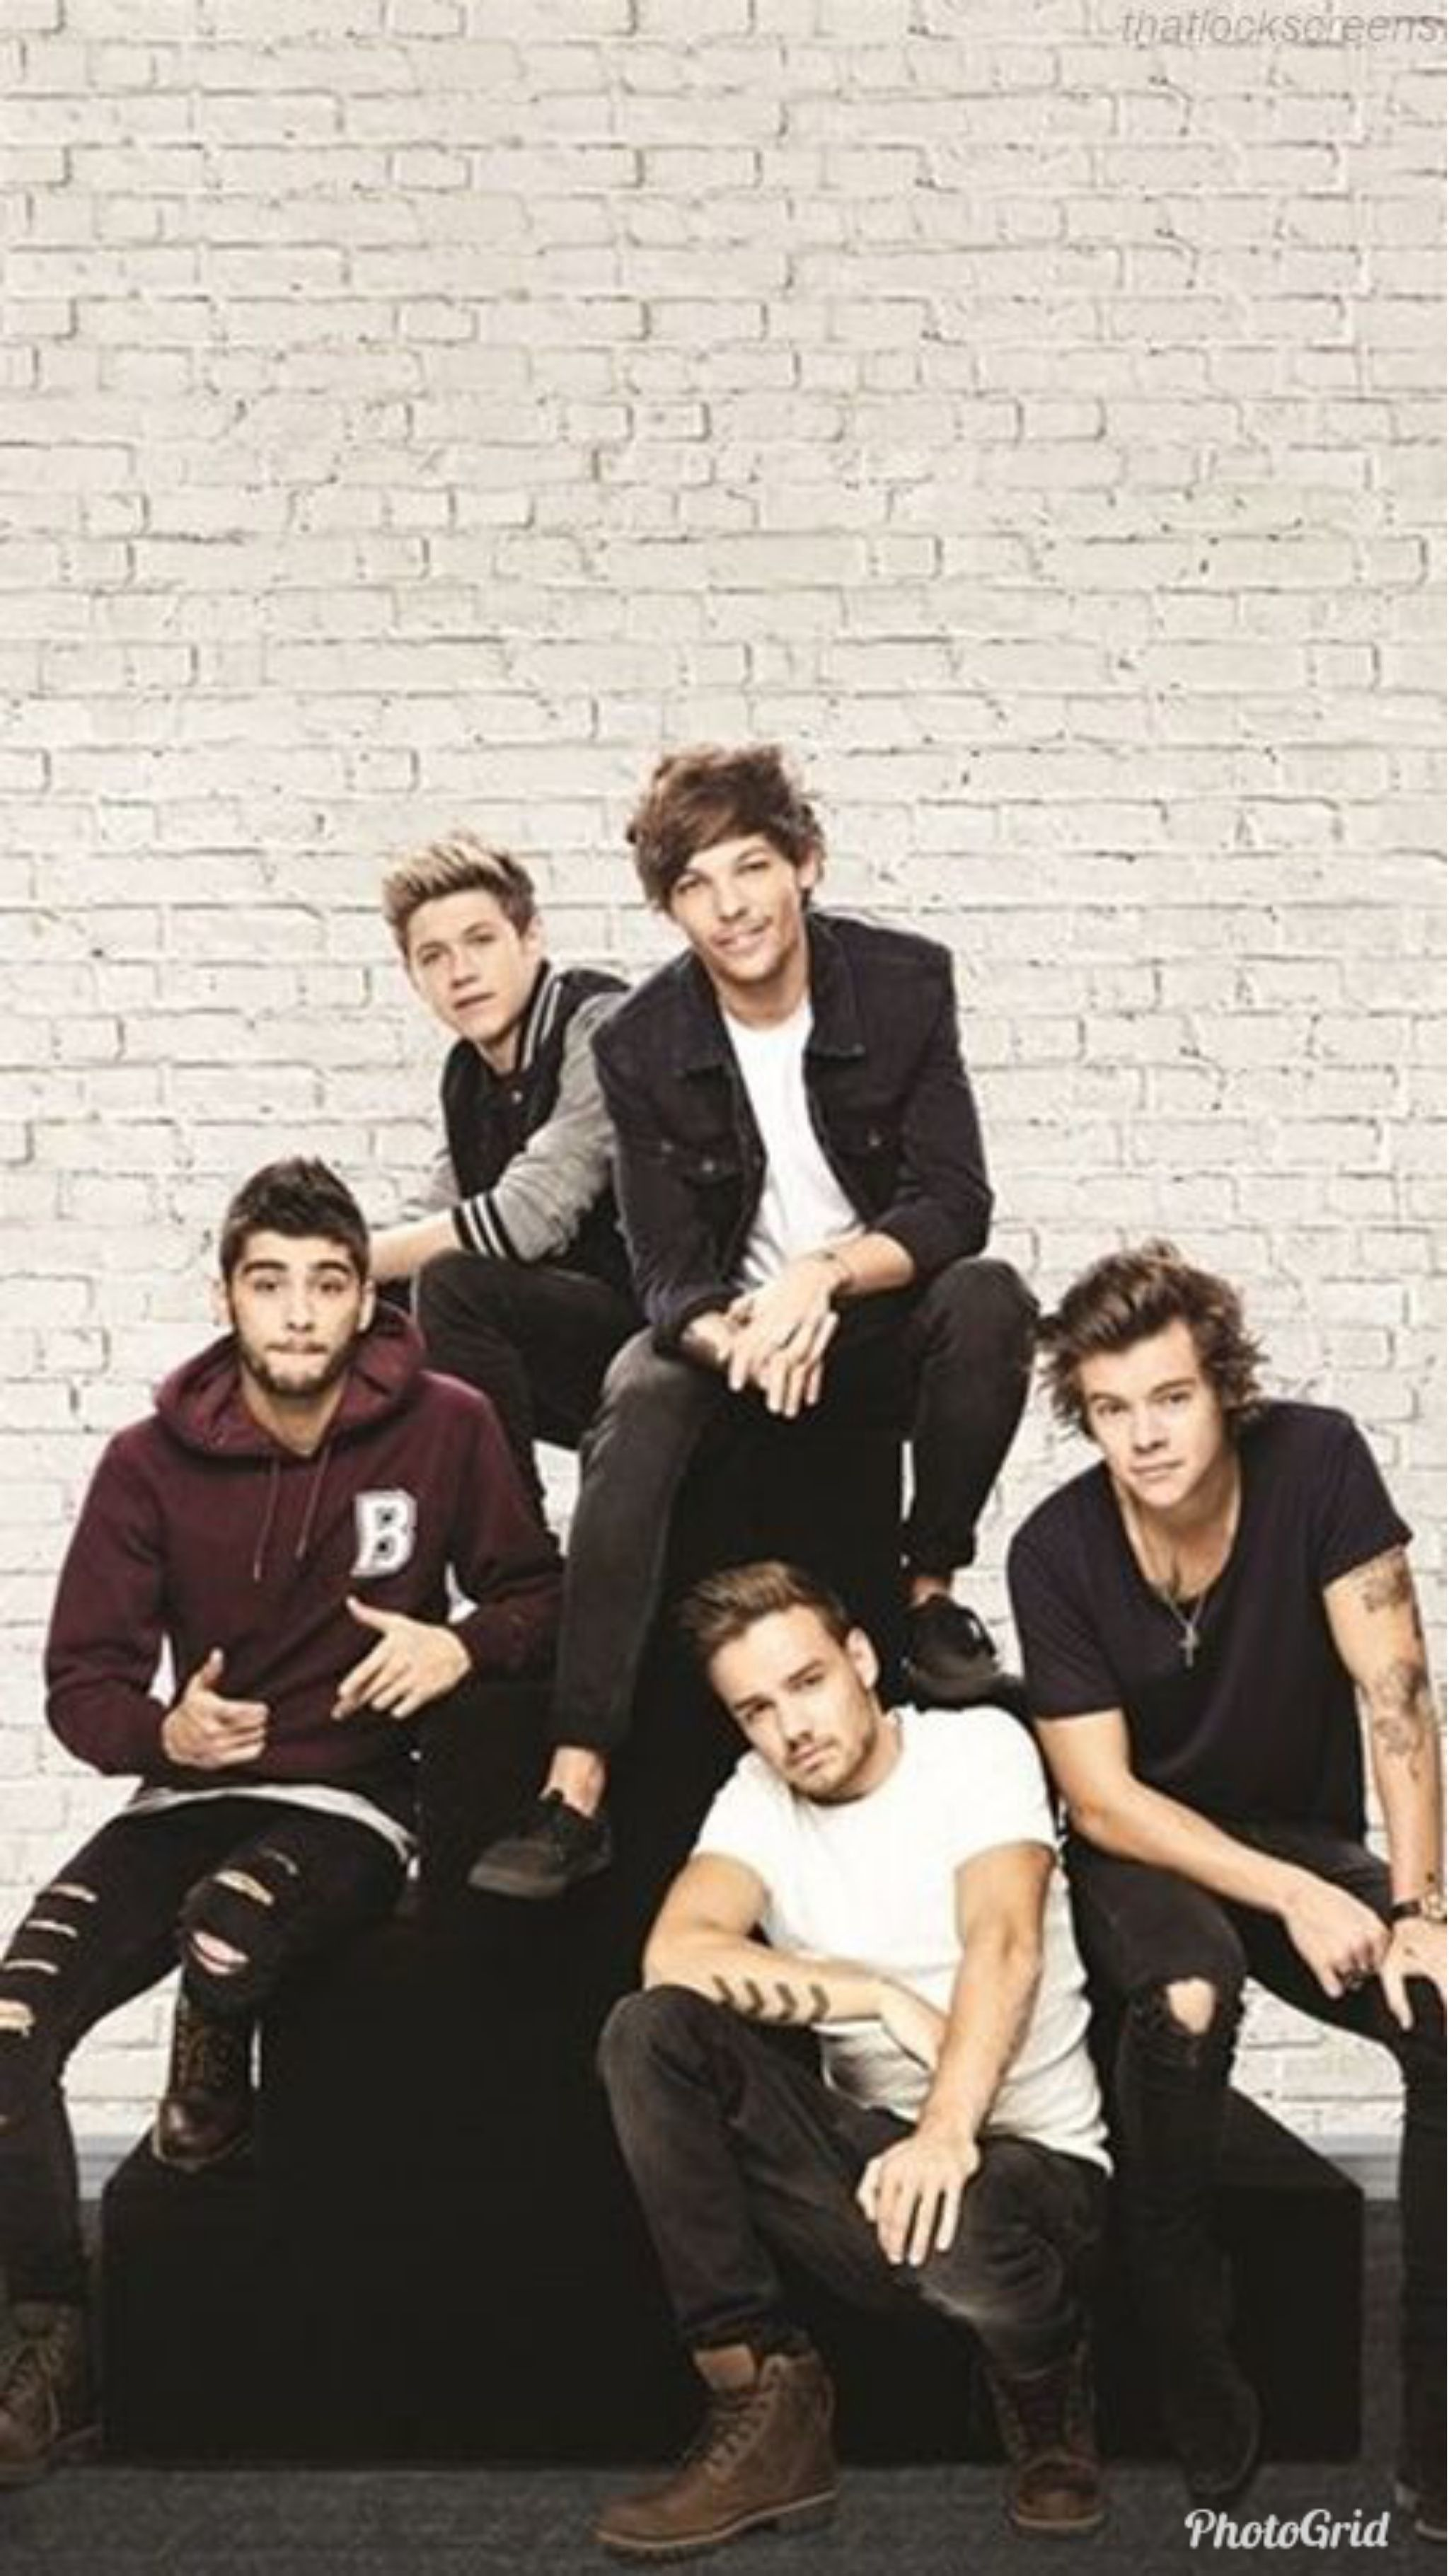 One Direction Aesthetic Wallpapers Top Free One Direction Aesthetic Backgrounds Wallpaperaccess 100 pics harry styles one direction aesthetic collage kit black and white. one direction aesthetic wallpapers